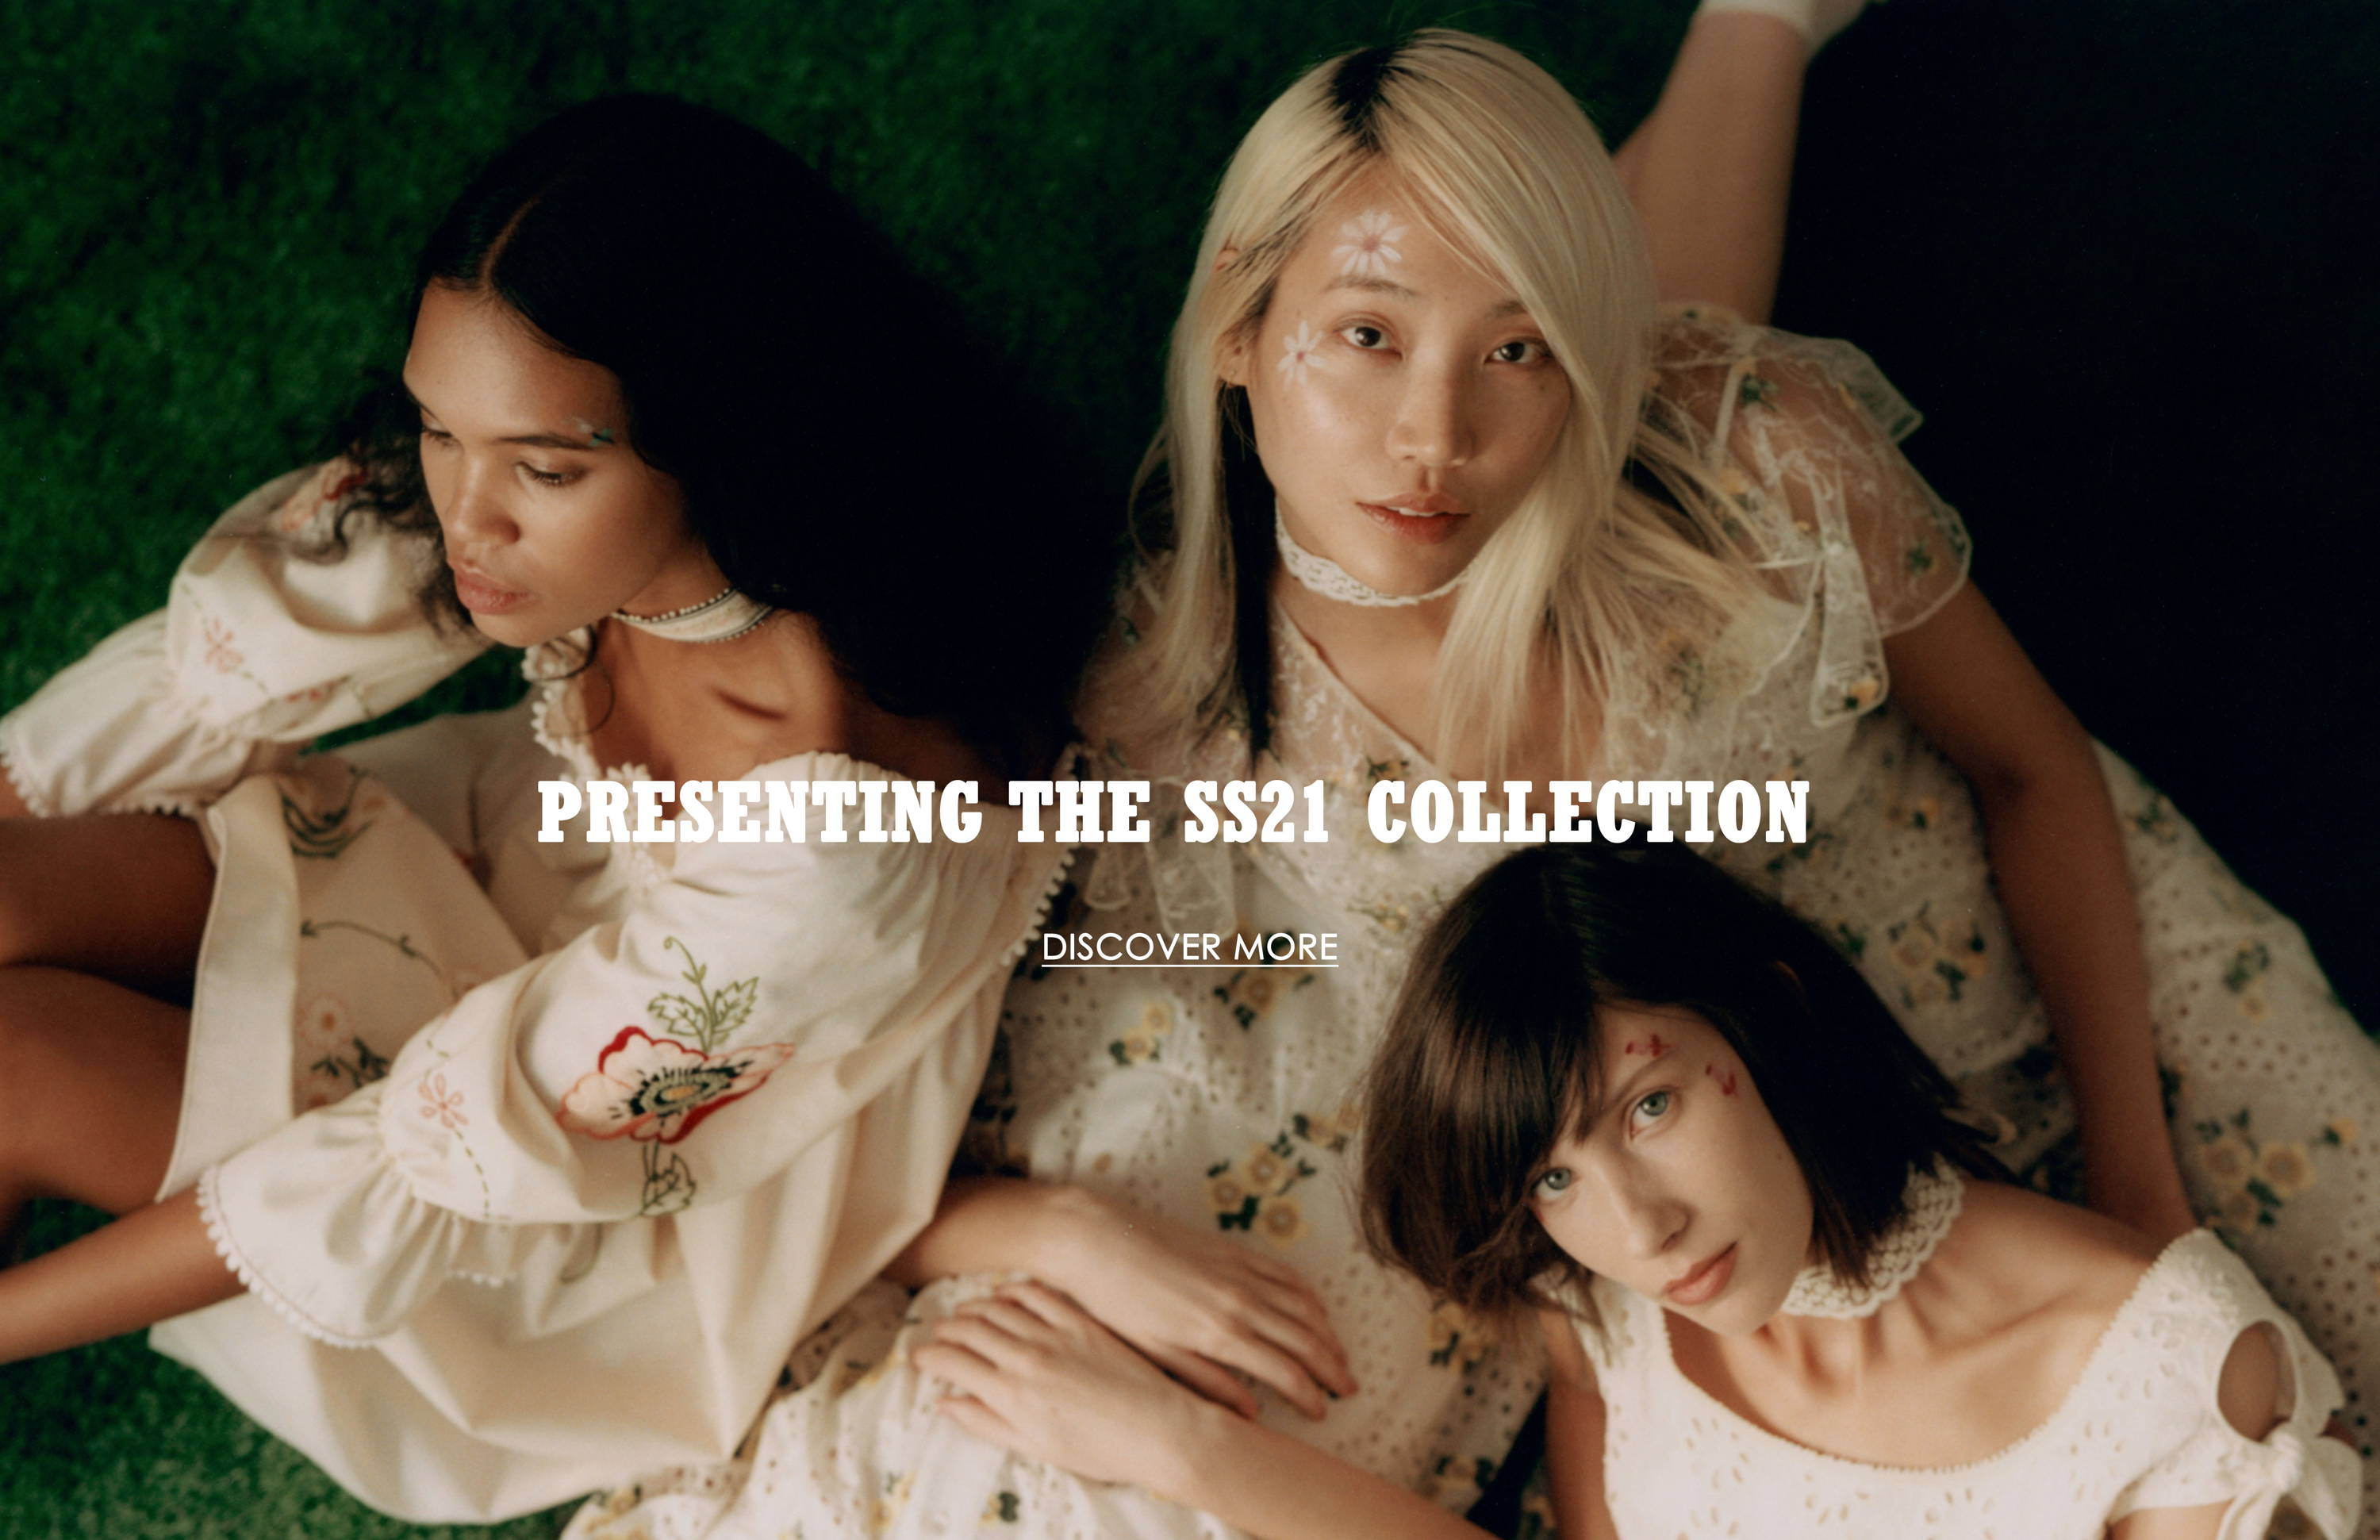 Discover the Spring Summer 2021 Collection. Jordan Daniels, Soo Joo Park, Sara Grace Wallerstadt and Sasha Kynsh  wear white dresses from the newest Anna Sui Collection